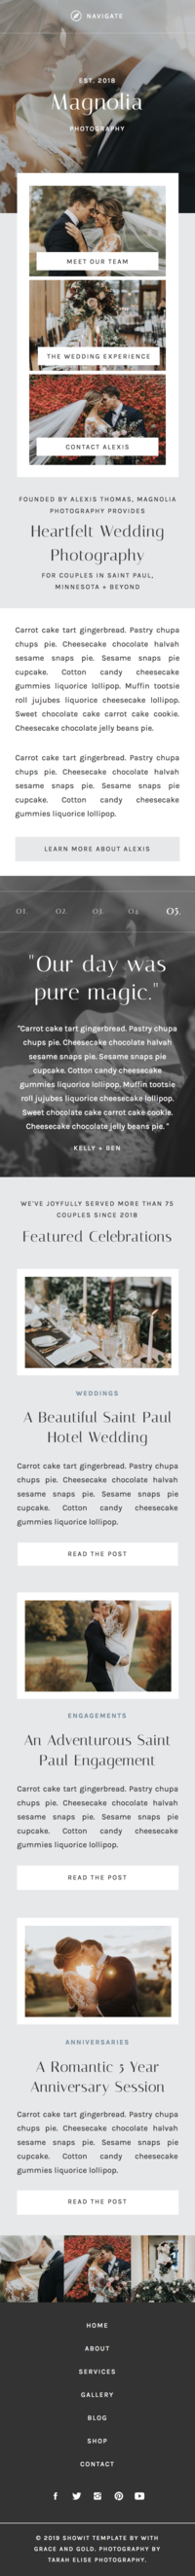 Showit Theme - Showit Design - Showit Template - With Grace and Gold - Branding, Web Design, and Education for Creative Women in Business - Photographers